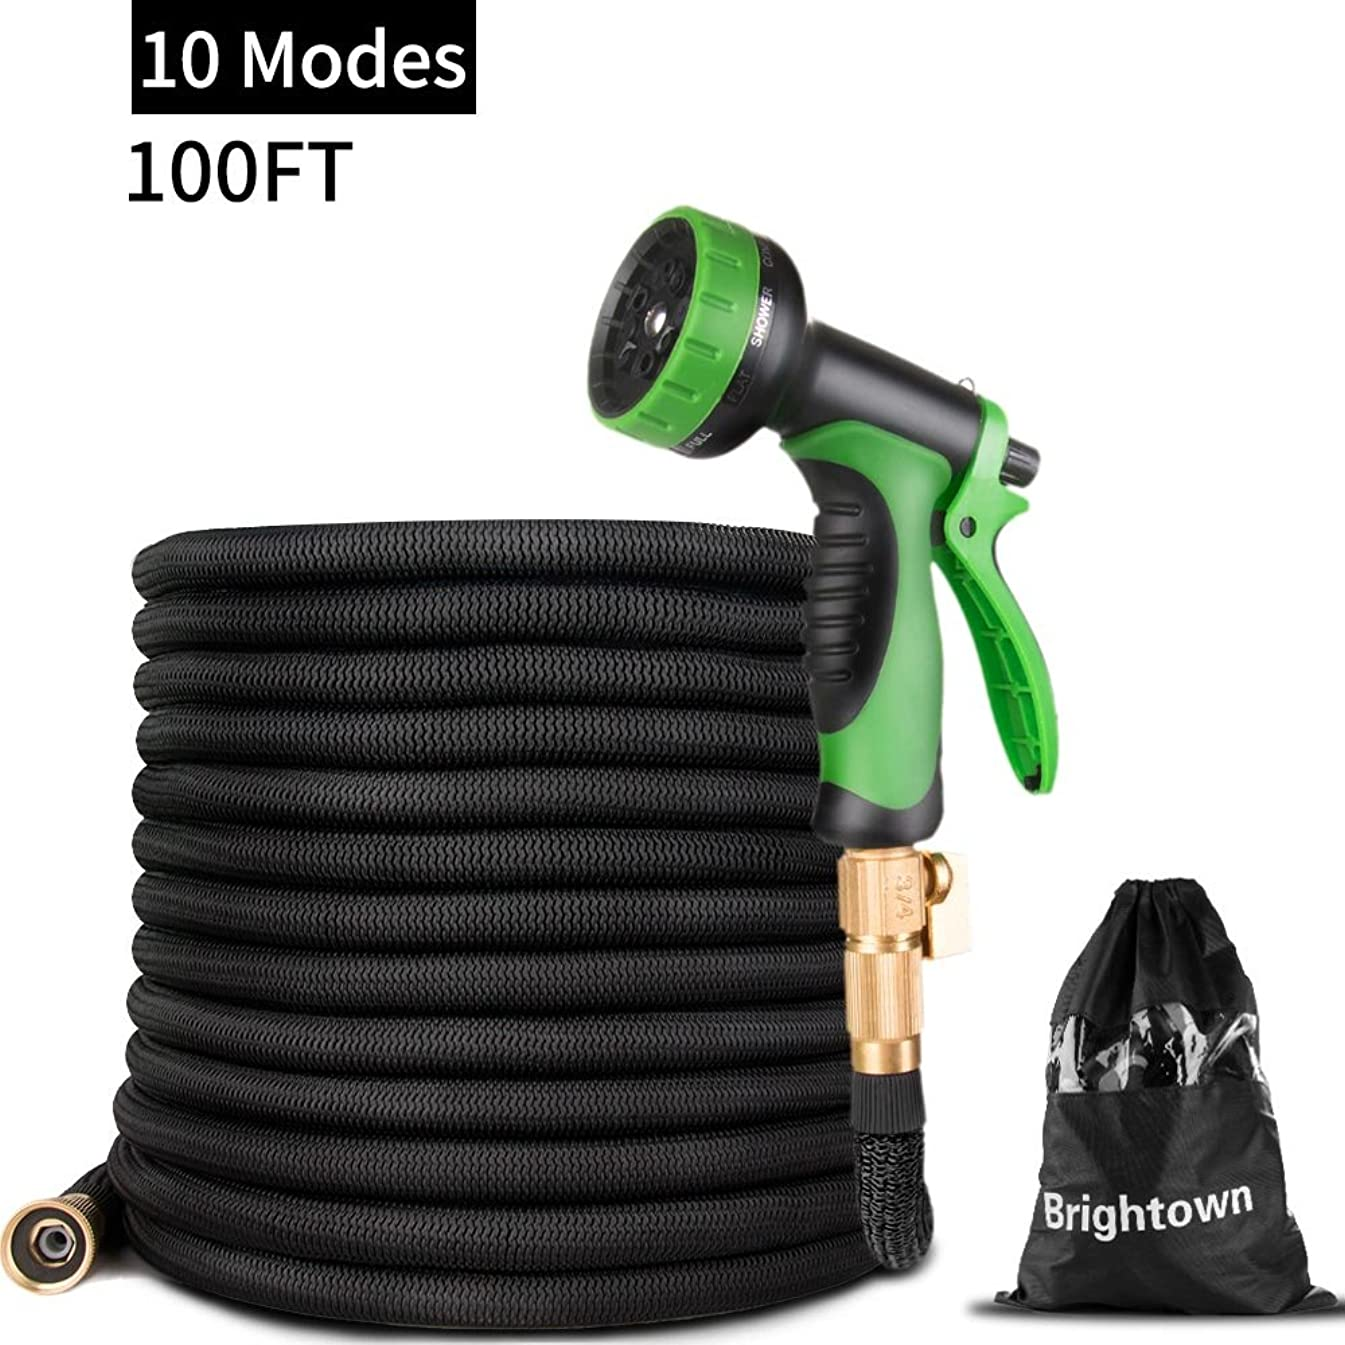 100FT Garden Hose-Heavy Duty Strongest Expandable Magic Water Hose with Double Latex Core, Solid Brass Connector 10 Pattern Spray Nozzle, Black